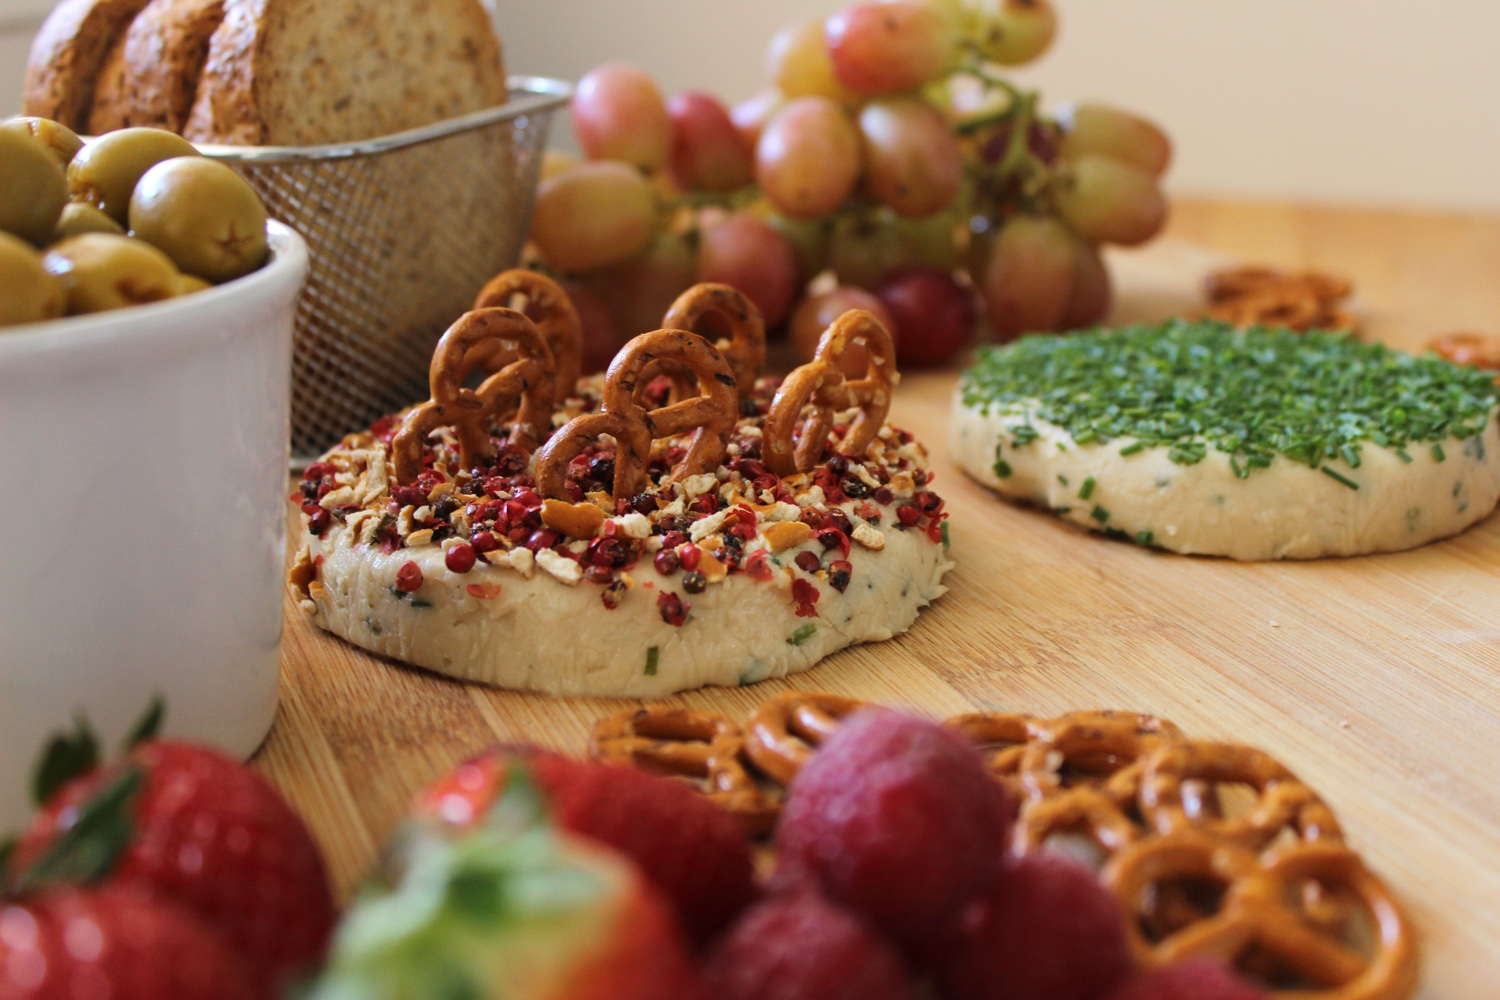 holiday_vegan_cheese_platter_with_homemade_cashew_cheese_festive_vegan_cheese_platter.jpg